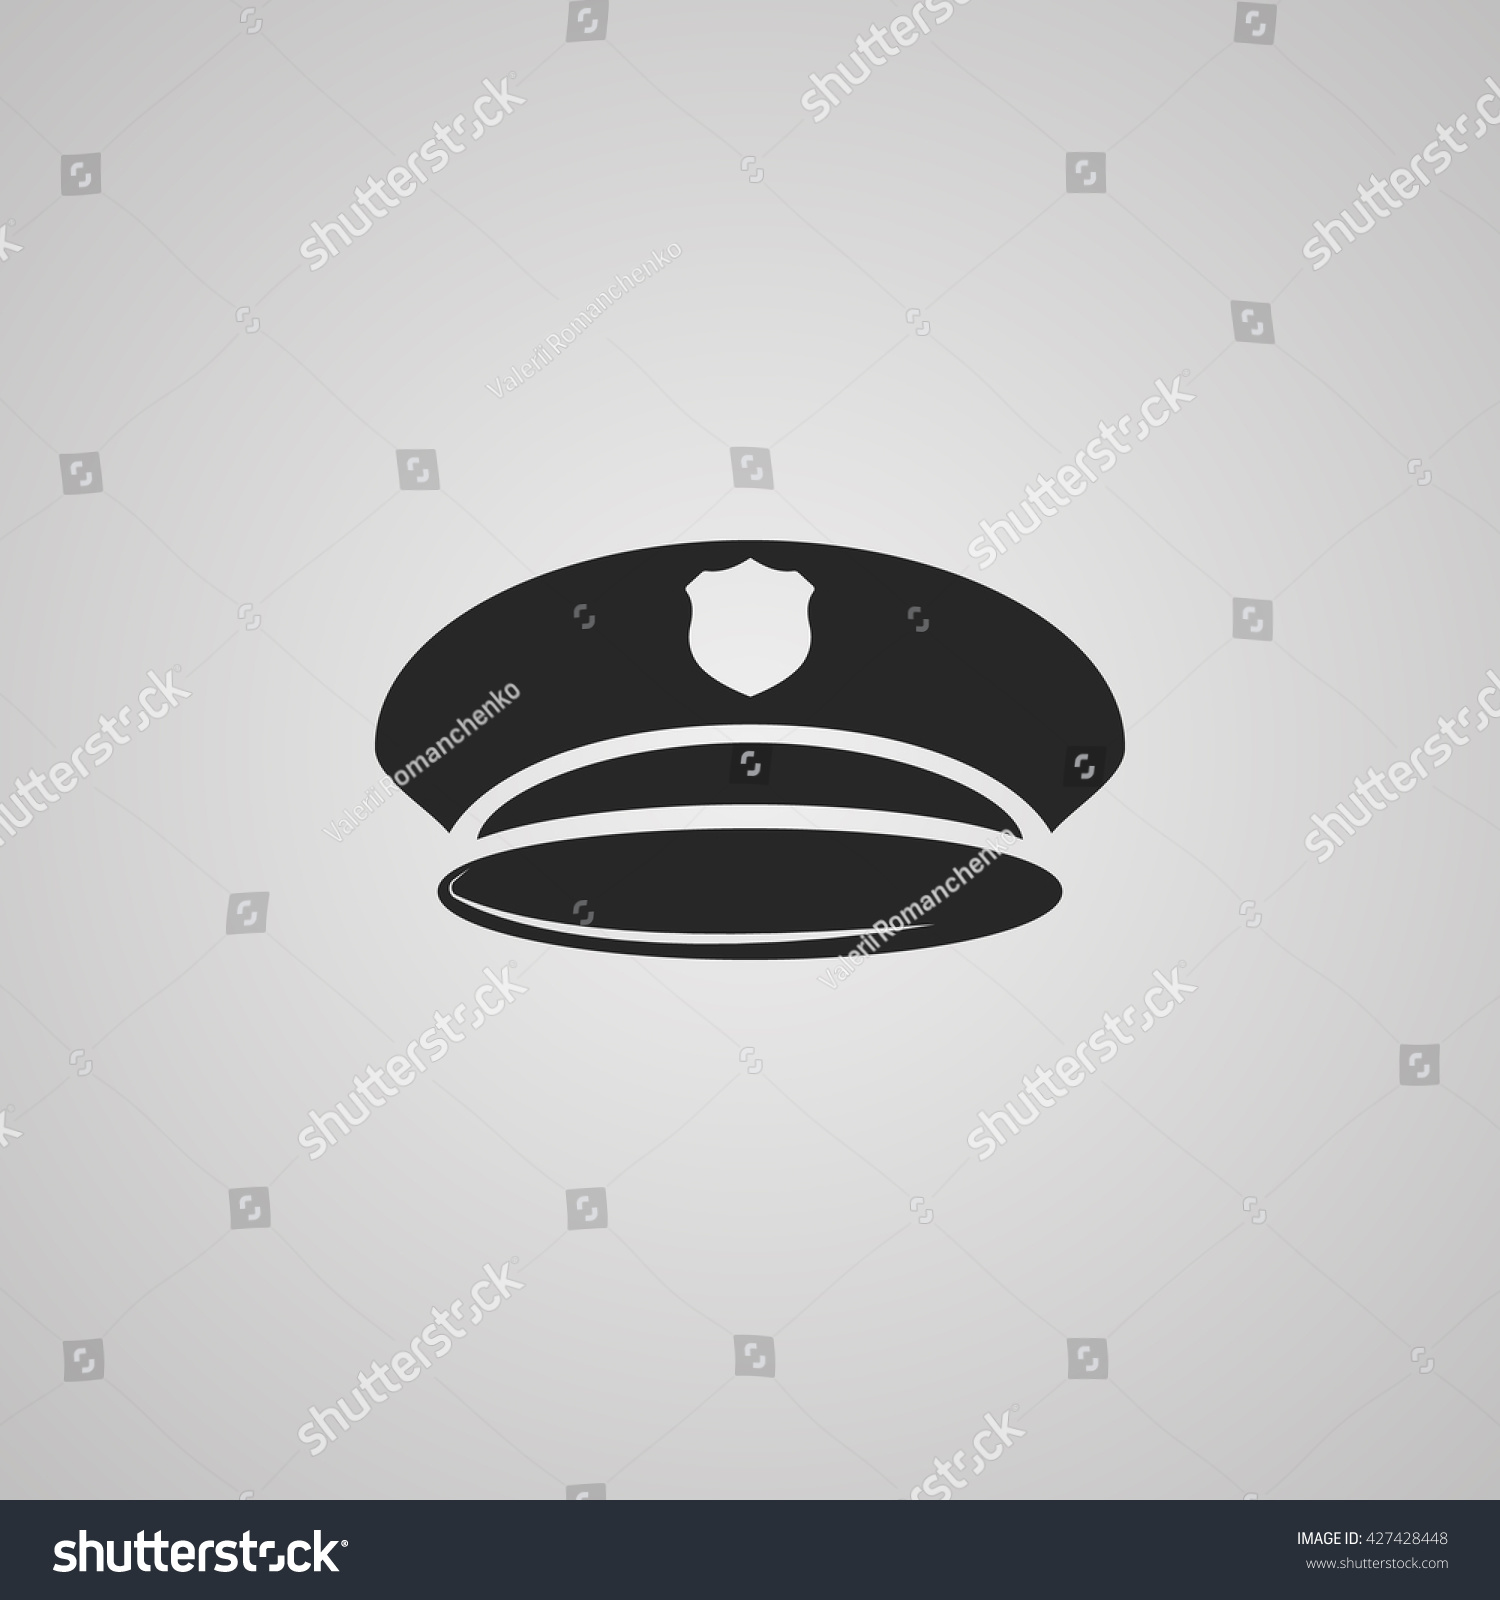 6a97af84b18 Vector Illustration Modern Police Hat Icon Stock Vector (Royalty ...